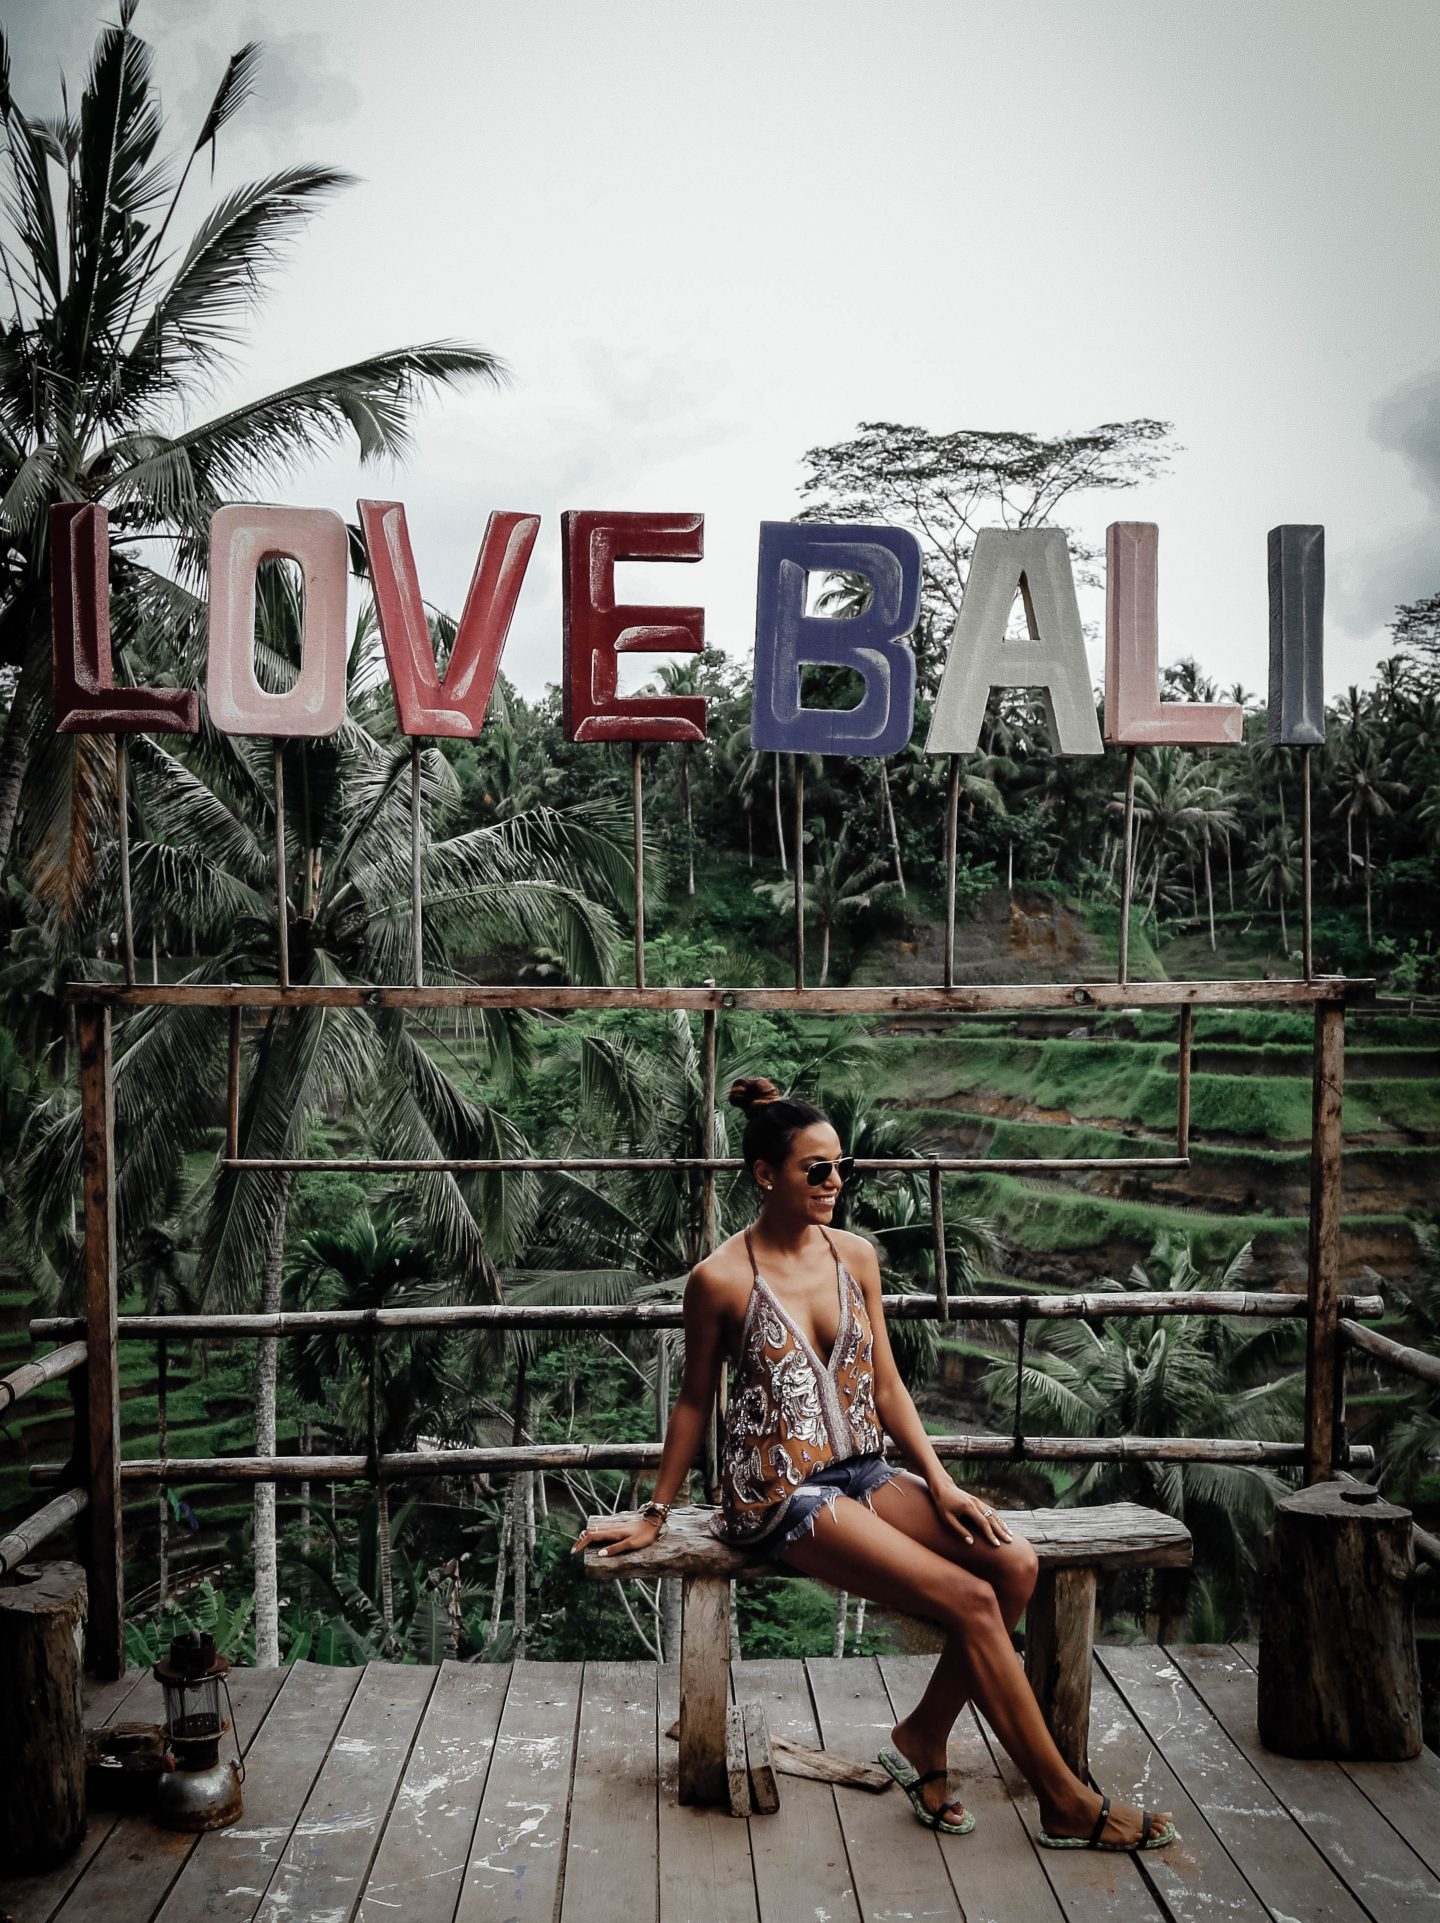 Bali Travel Guide Part I